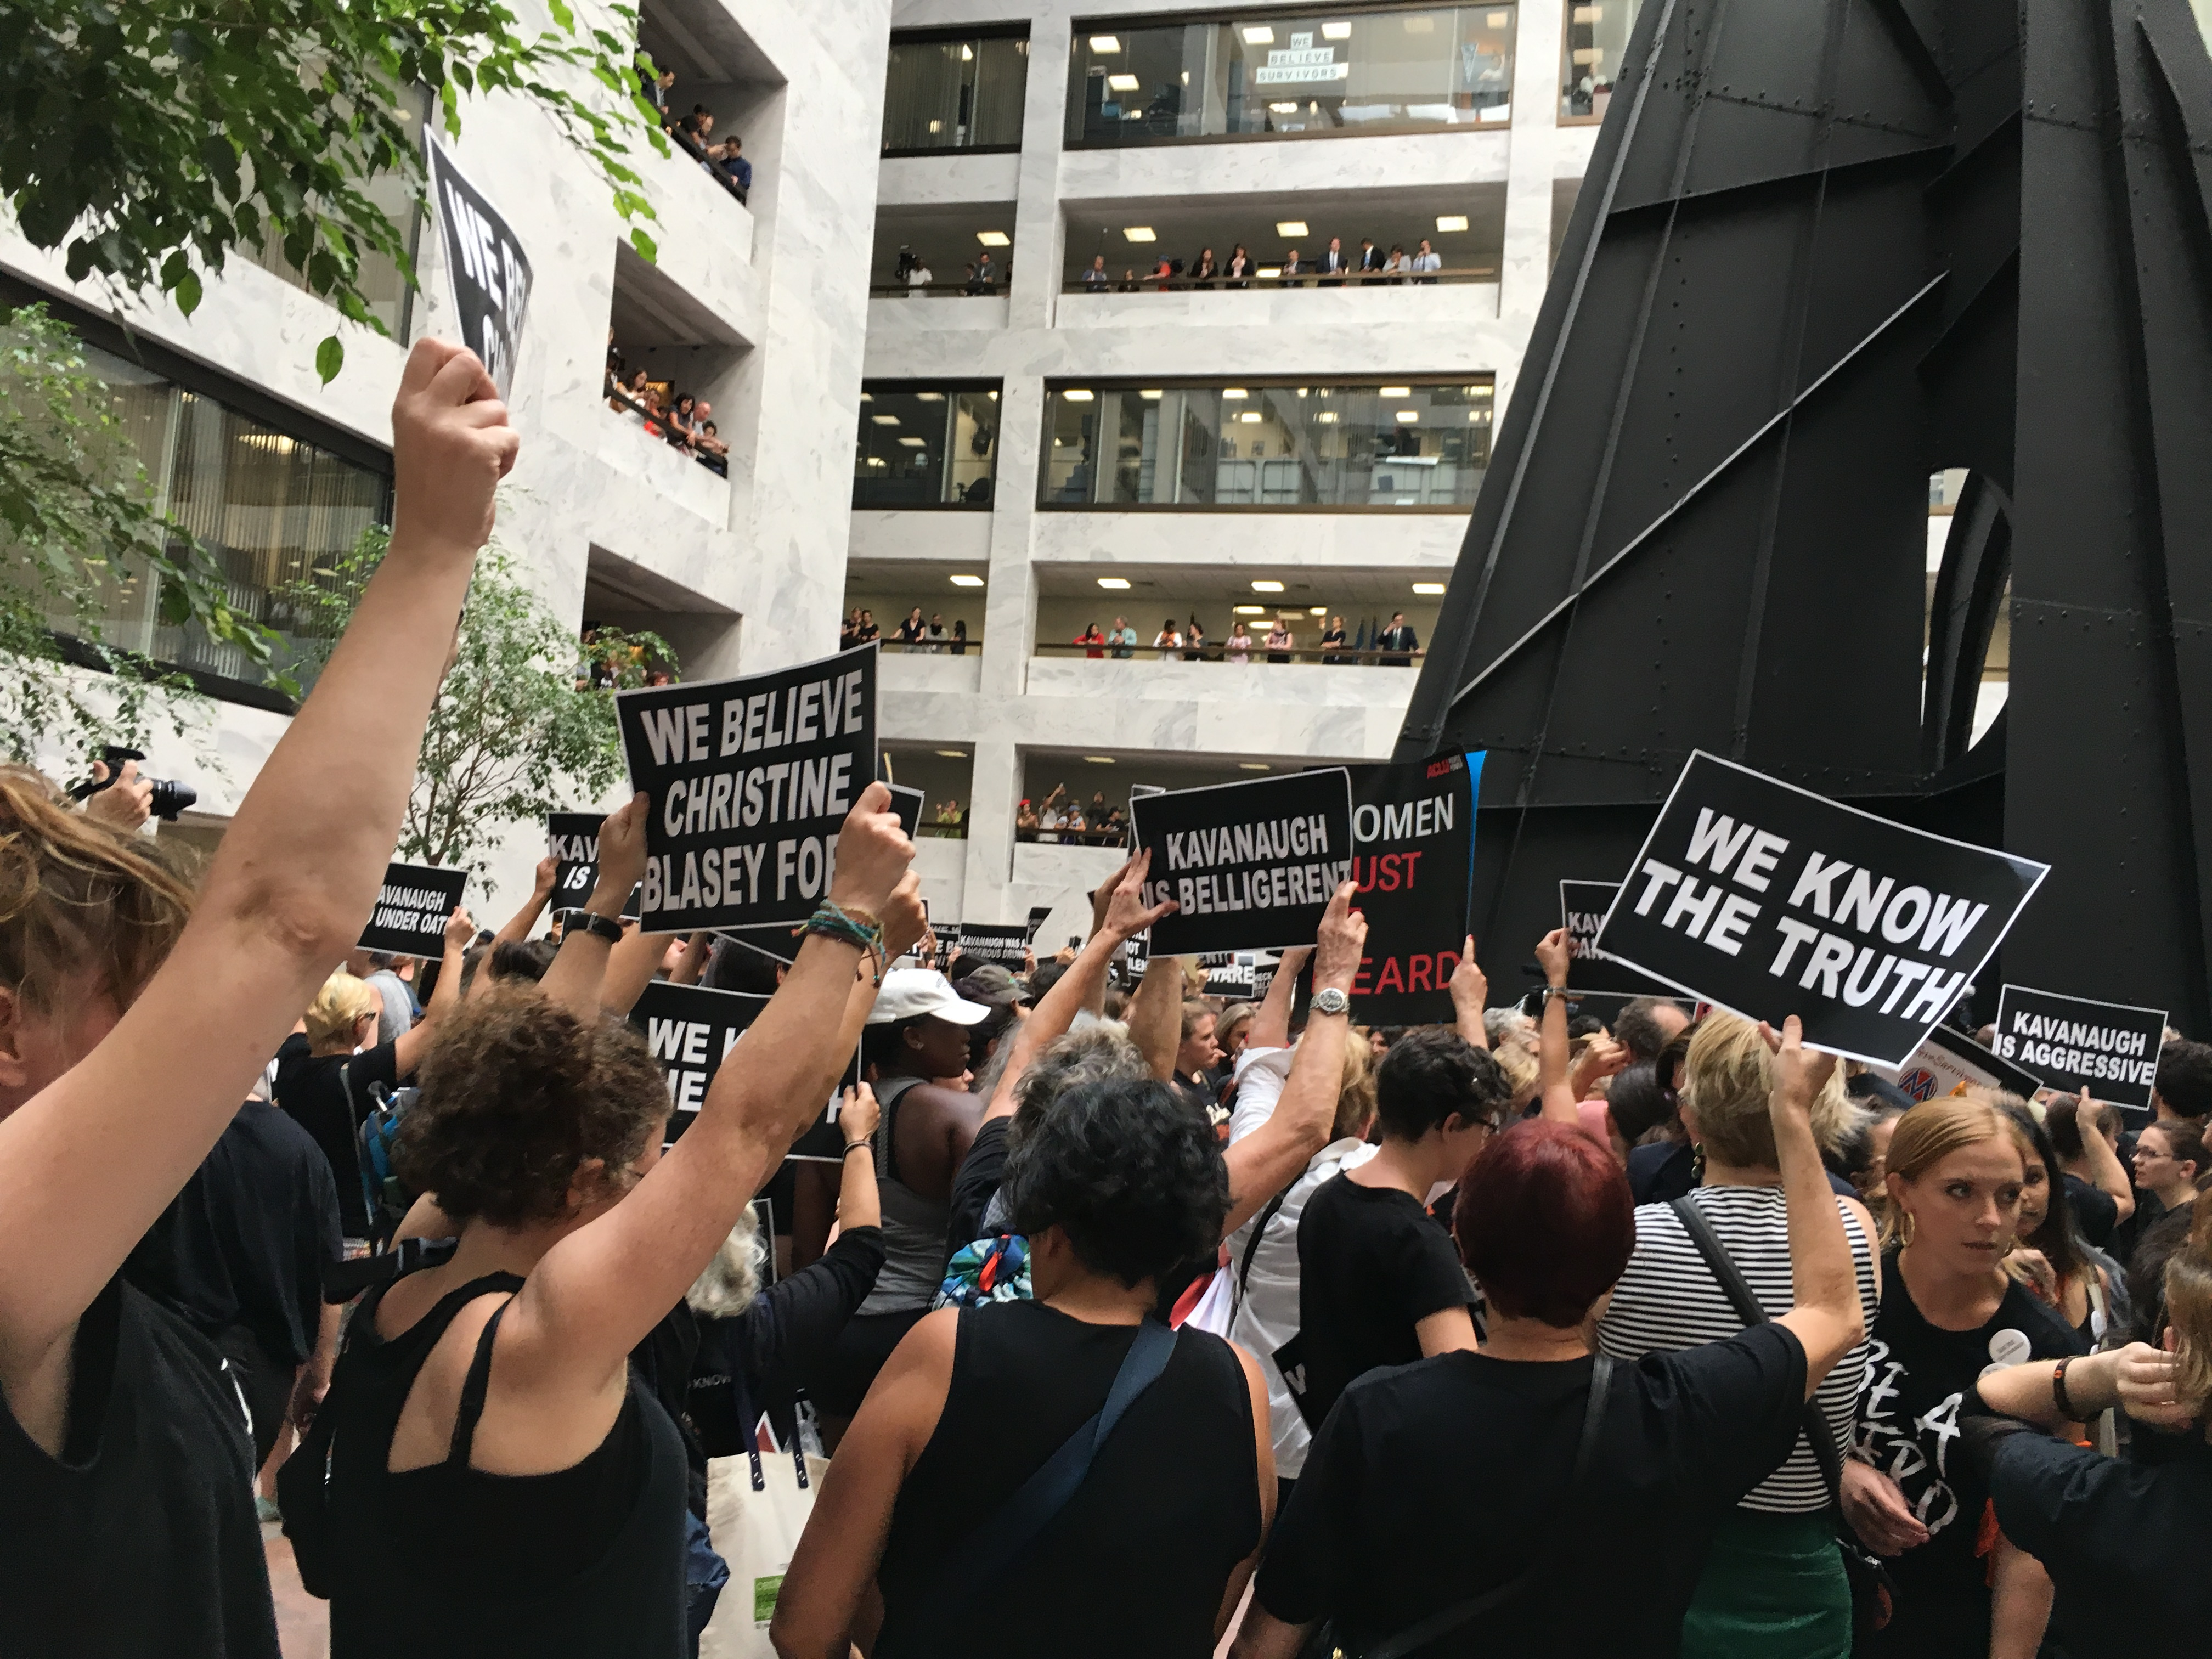 Protesters filled the Hart Senate Building on Oct. 4 to protest the nomination of Judge Brett Kavanaugh to the Supreme Court. (Charlotte Alter -- TIME)